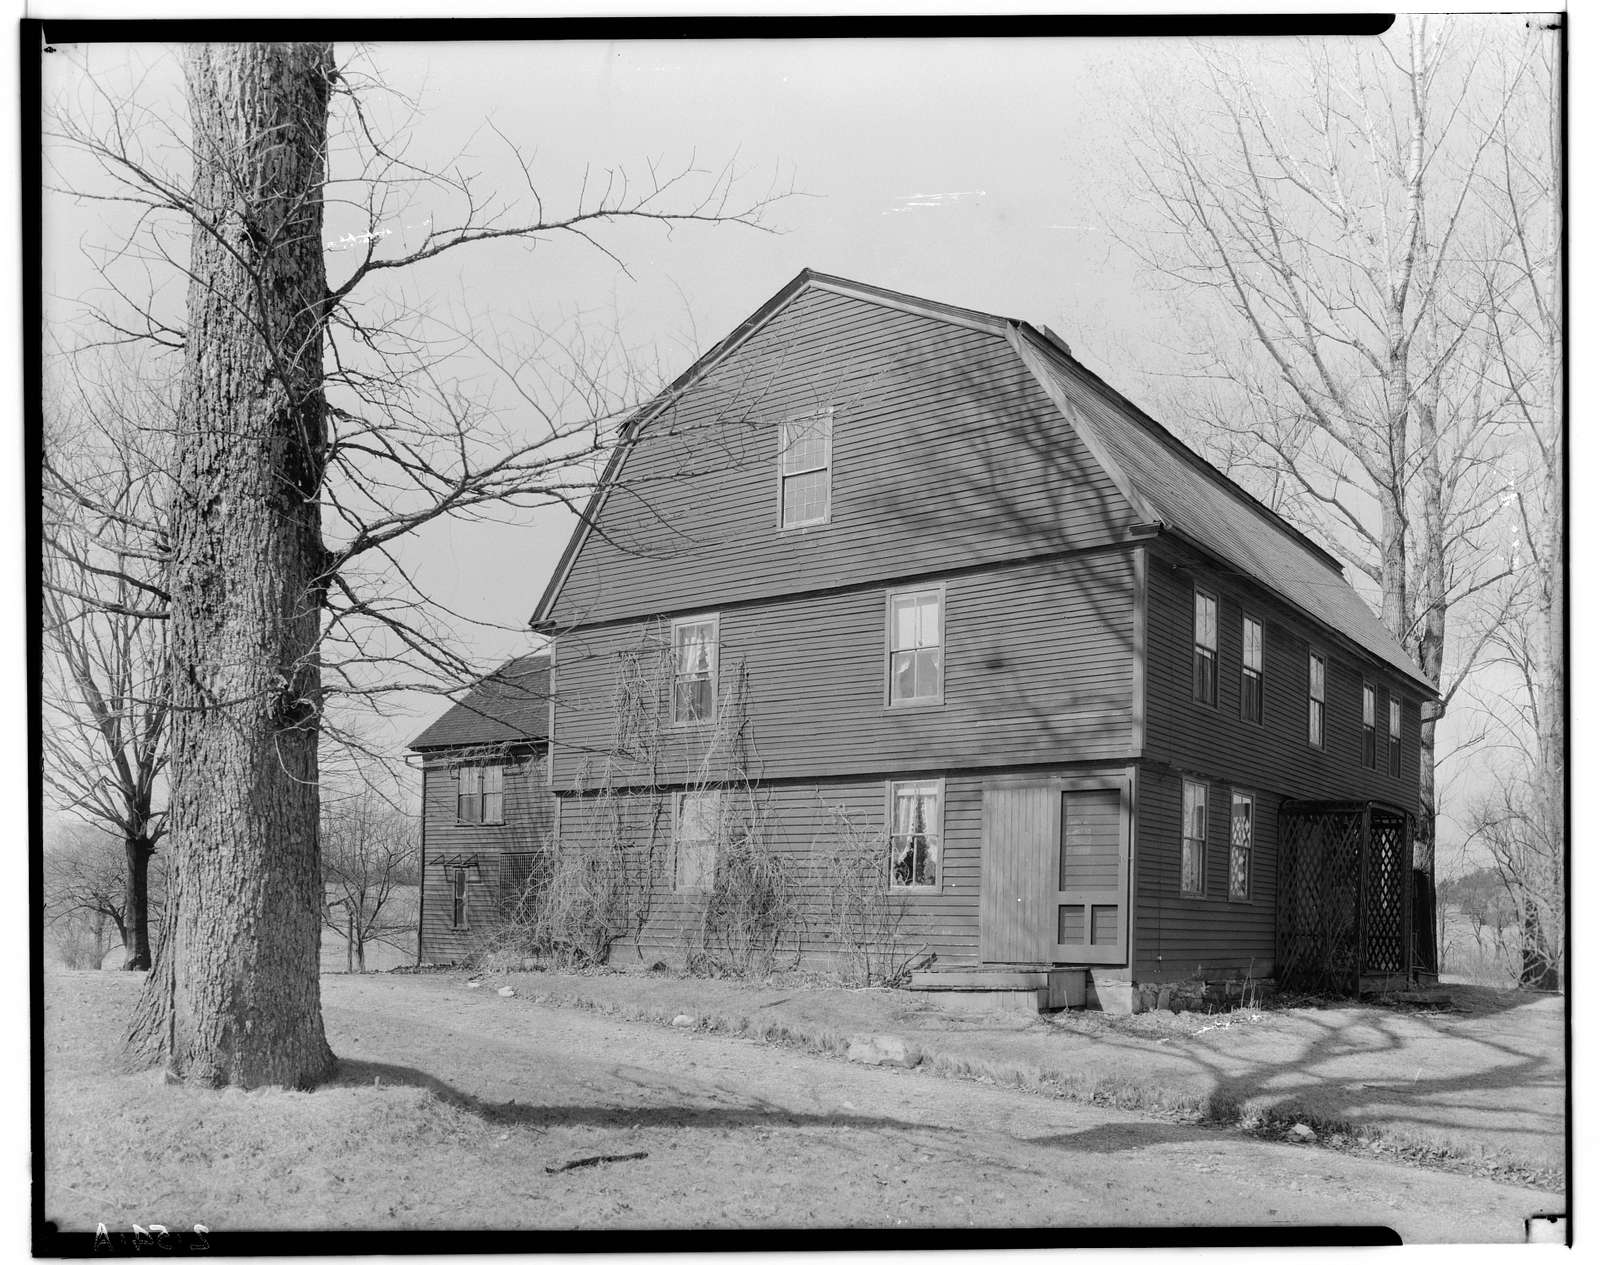 William Brattle Jr. House, 626 Williams Street, Pittsfield, Berkshire County, MA